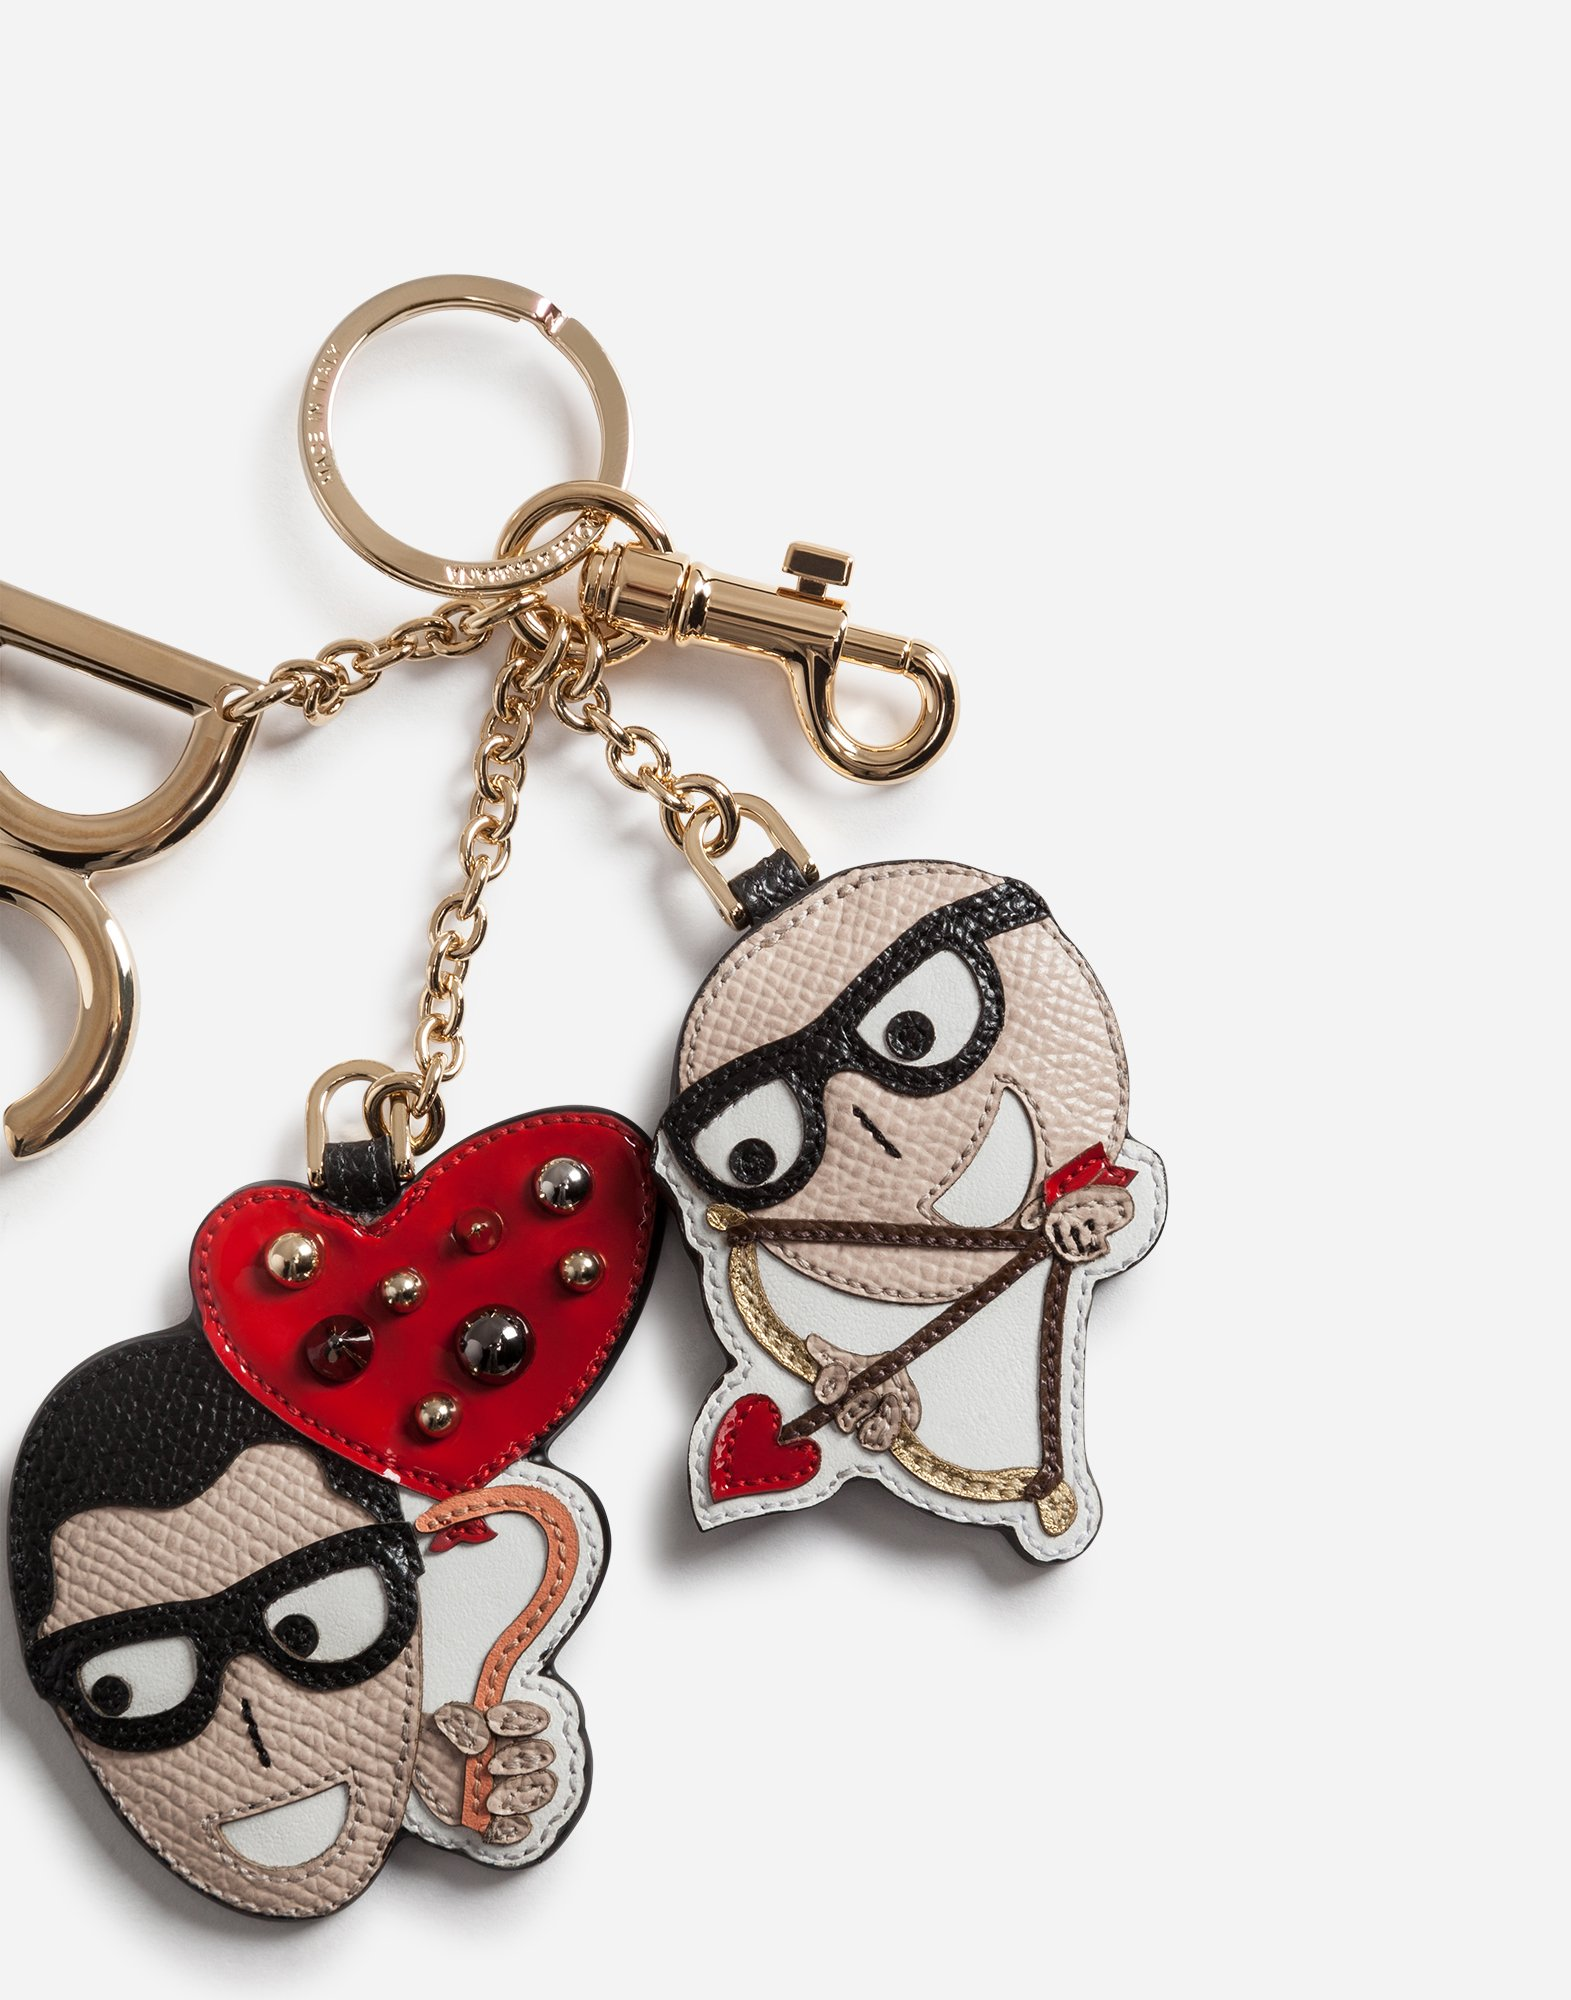 Dolce & Gabbana KEYCHAIN IN DAUPHINE CALFSKIN WITH DESIGNERS' PATCHES